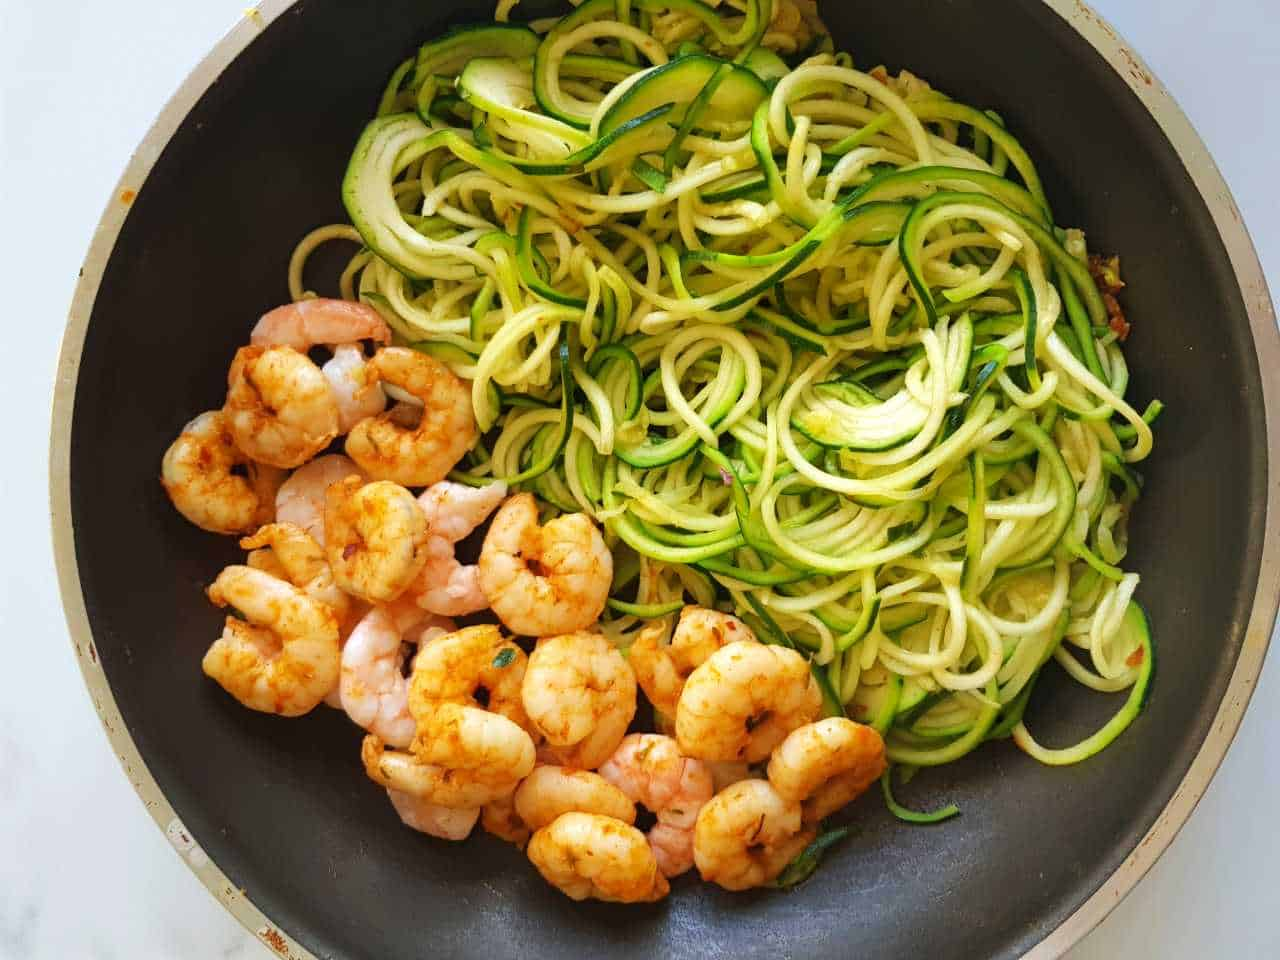 Zucchini noodles and shrimp in a pan on a marble table.